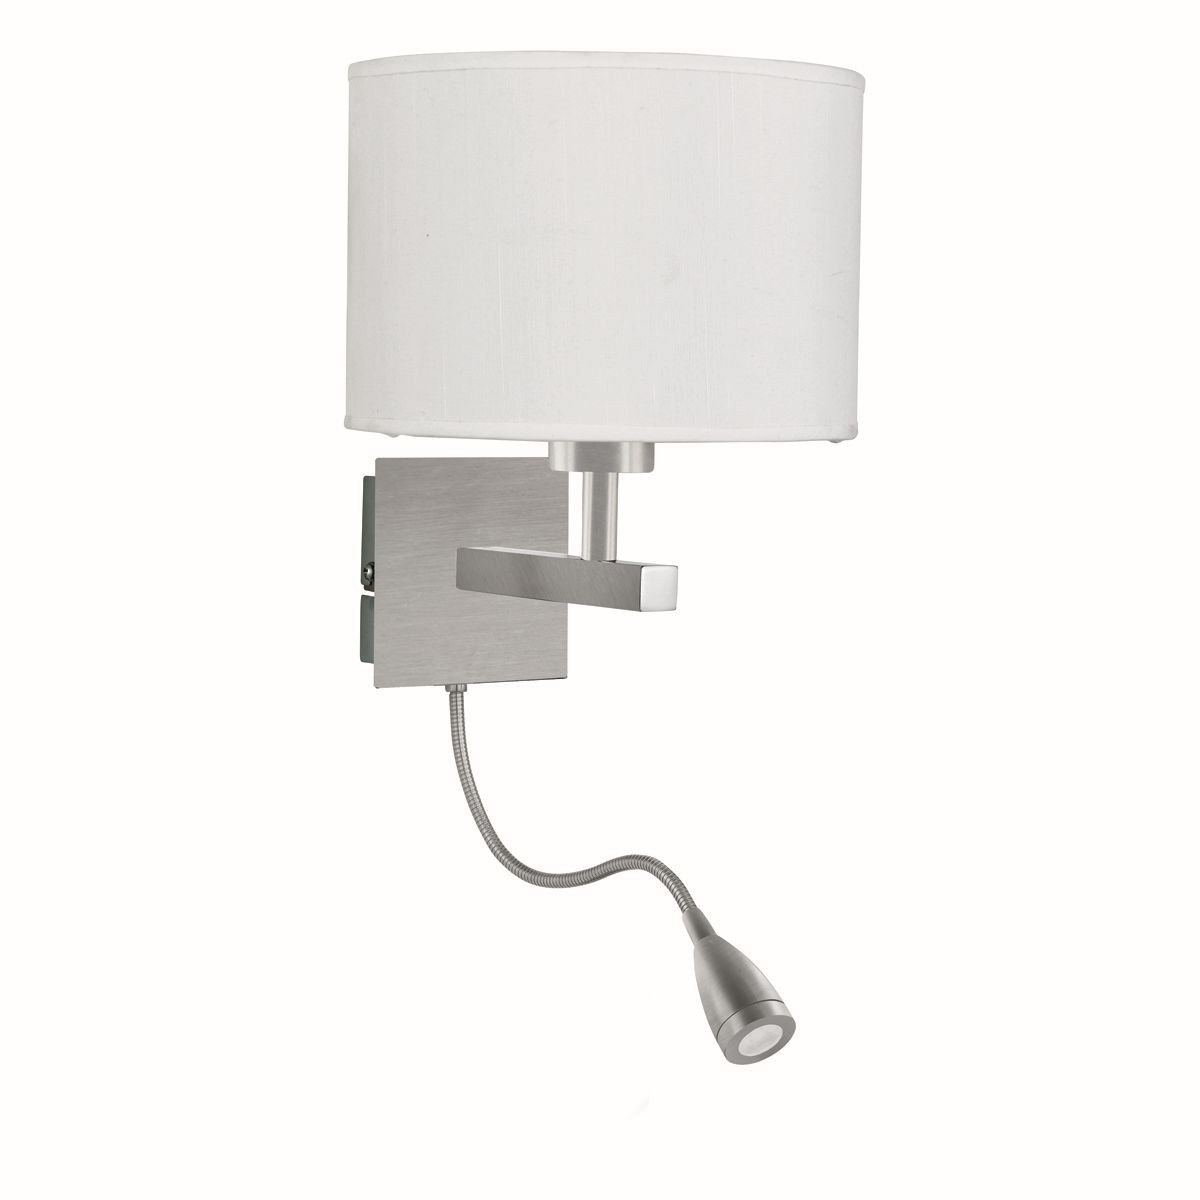 Flexible Led Dual Arm Wall Light Switched Satin Silver